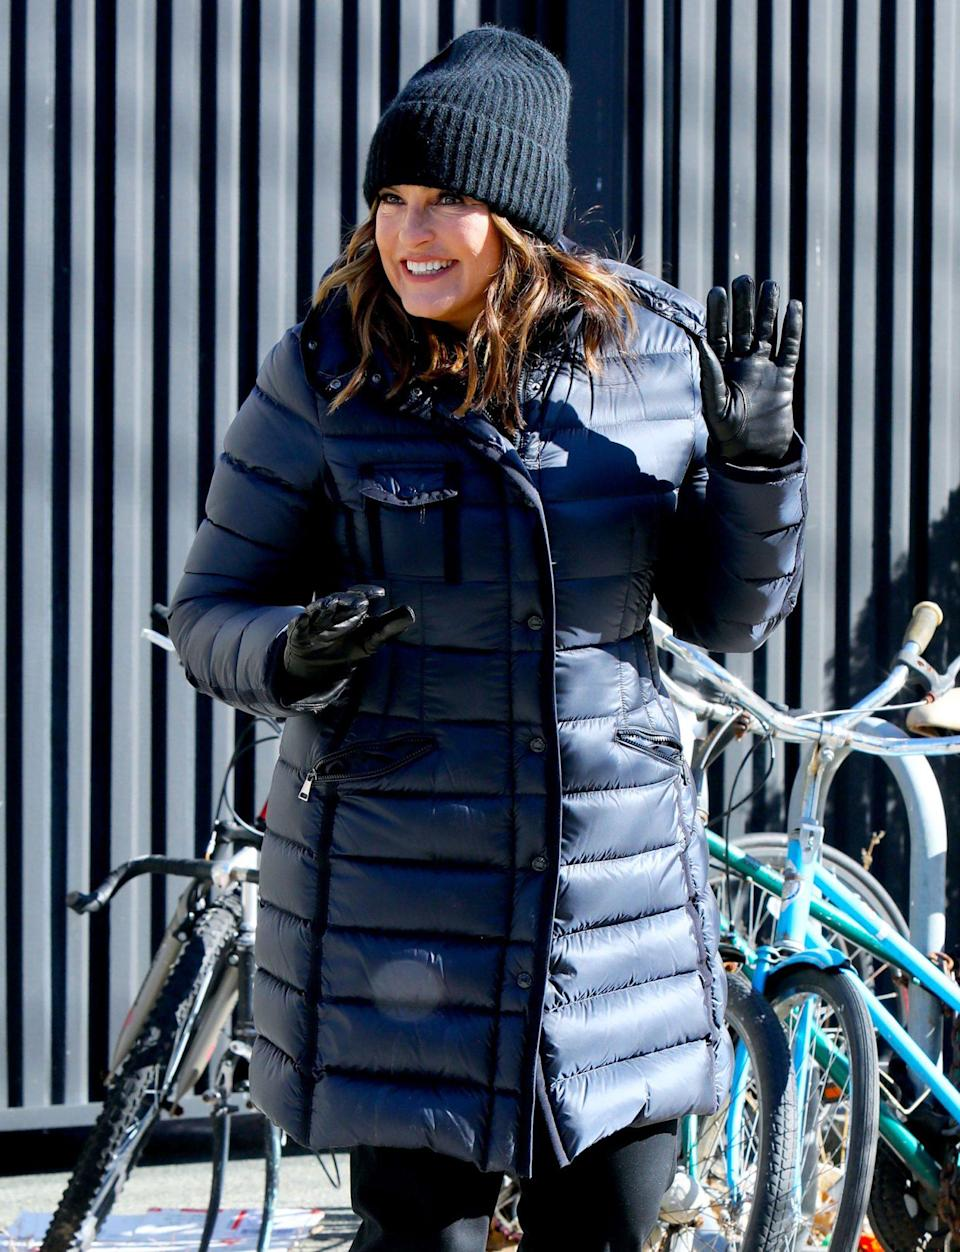 <p>Mariska Hargitay bundles up while on the set of <em>Law and Order: Special Victims Unit</em> on Wednesday in N.Y.C. </p>